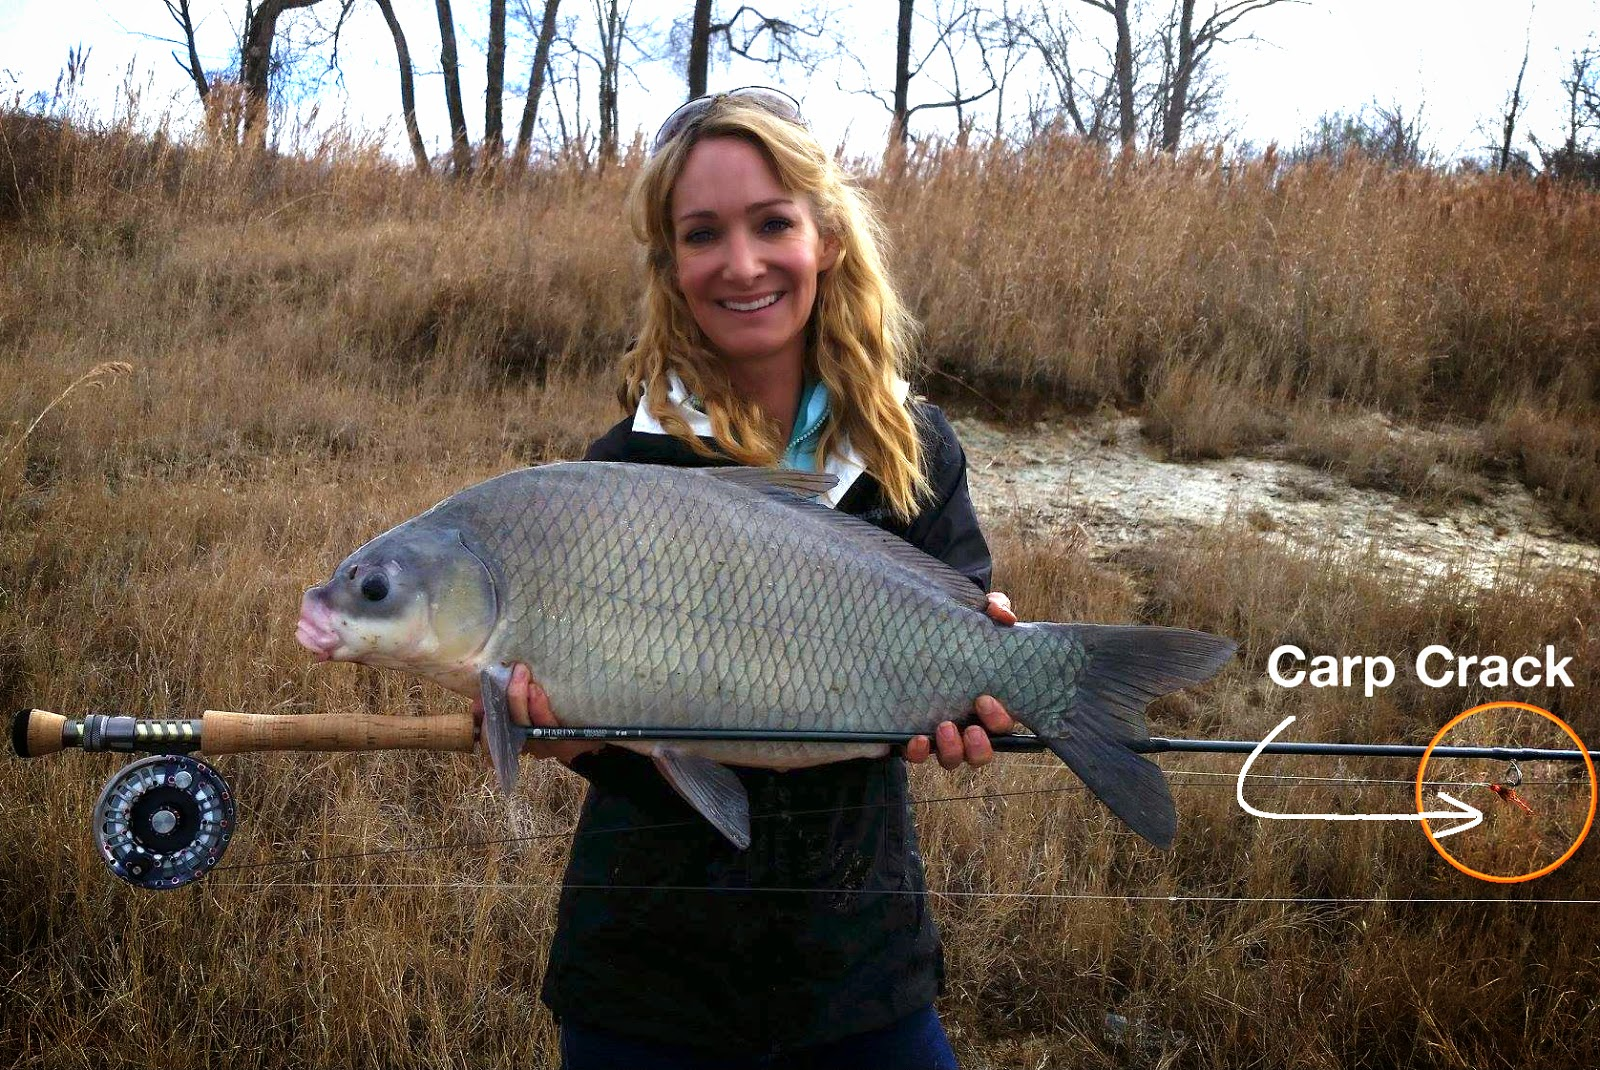 Meredith McCord and her IGFA record smallmouth buffalo caught on Lipton's Carp Crack